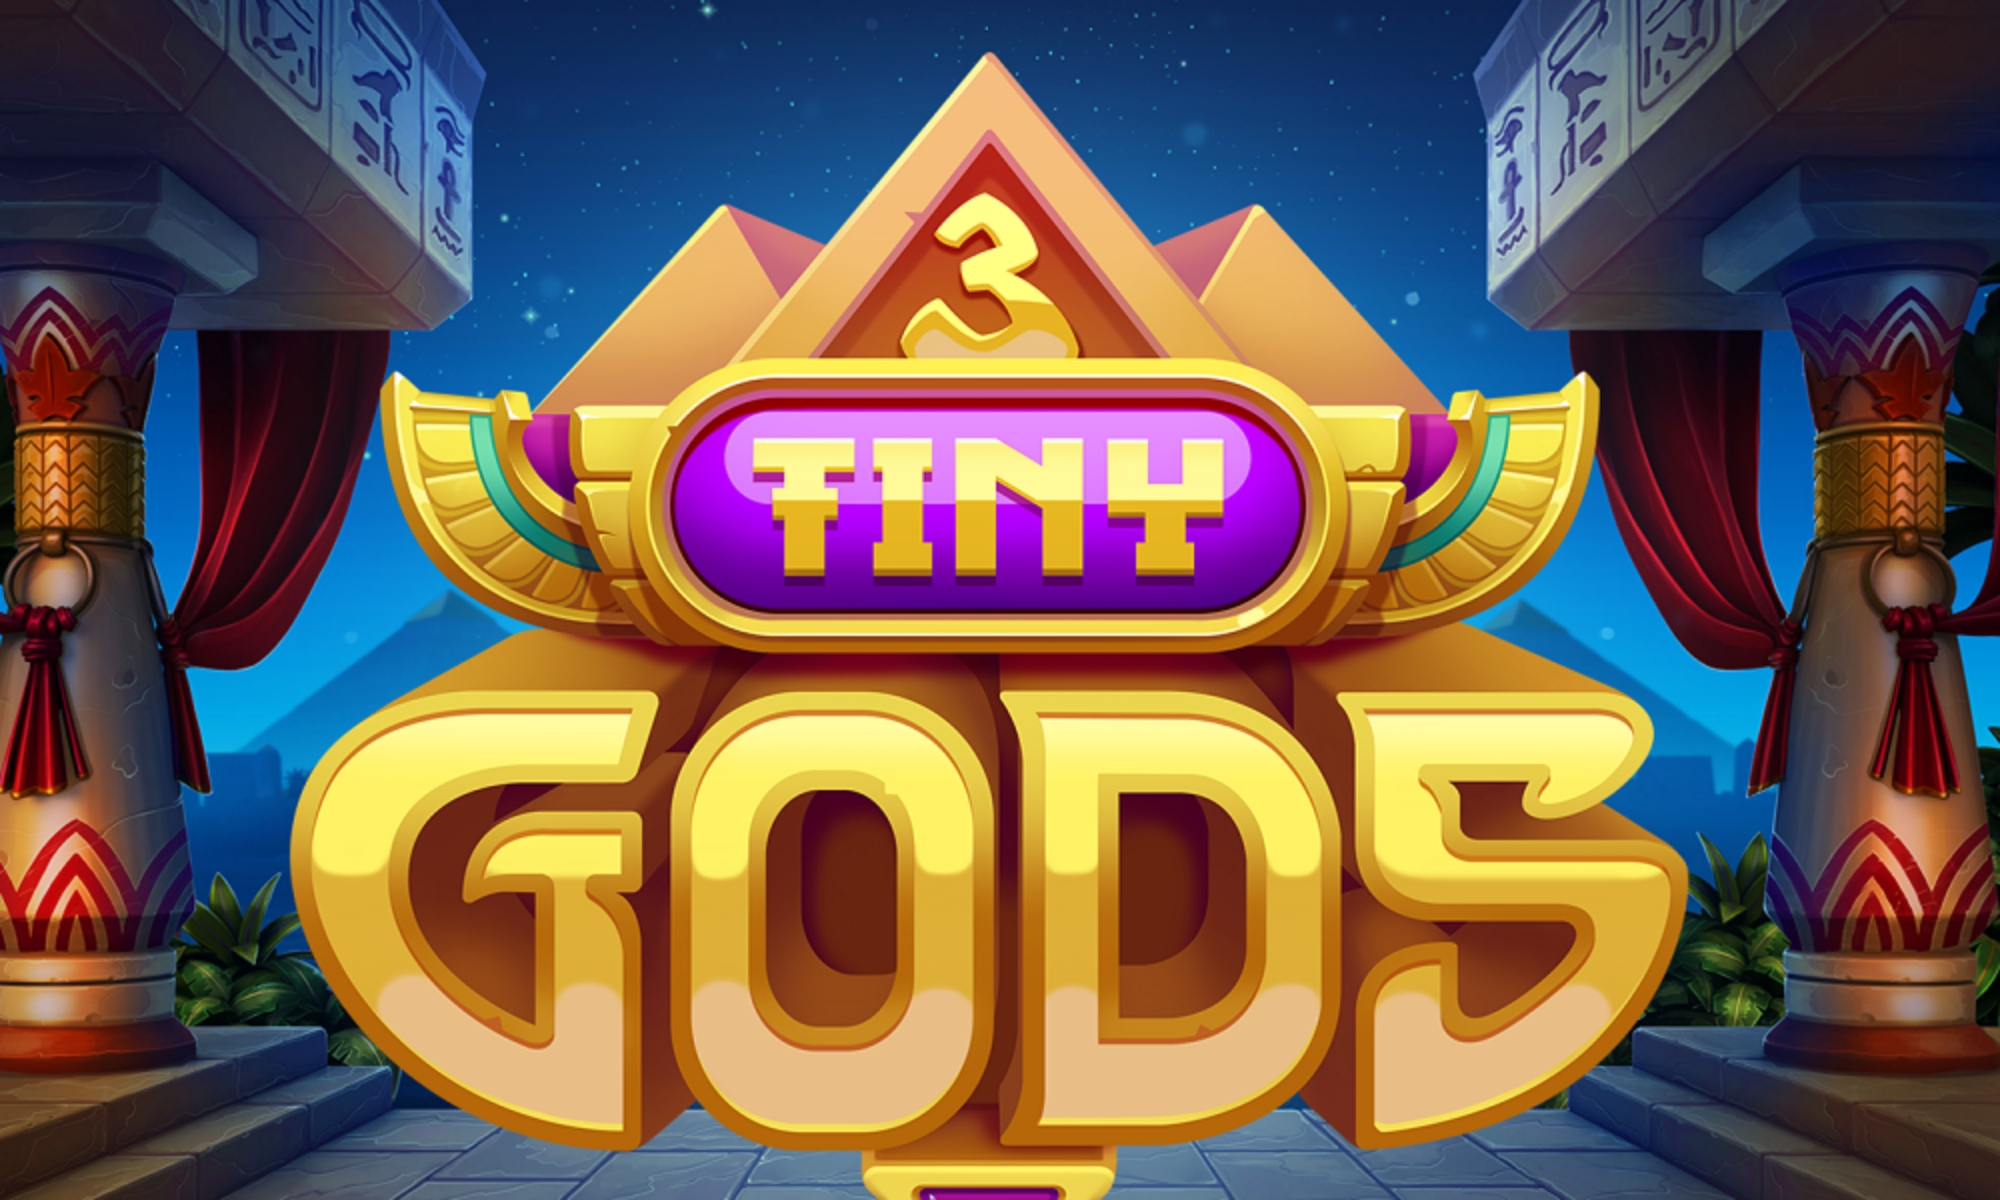 The 3 Tiny Gods Online Slot Demo Game by Foxium